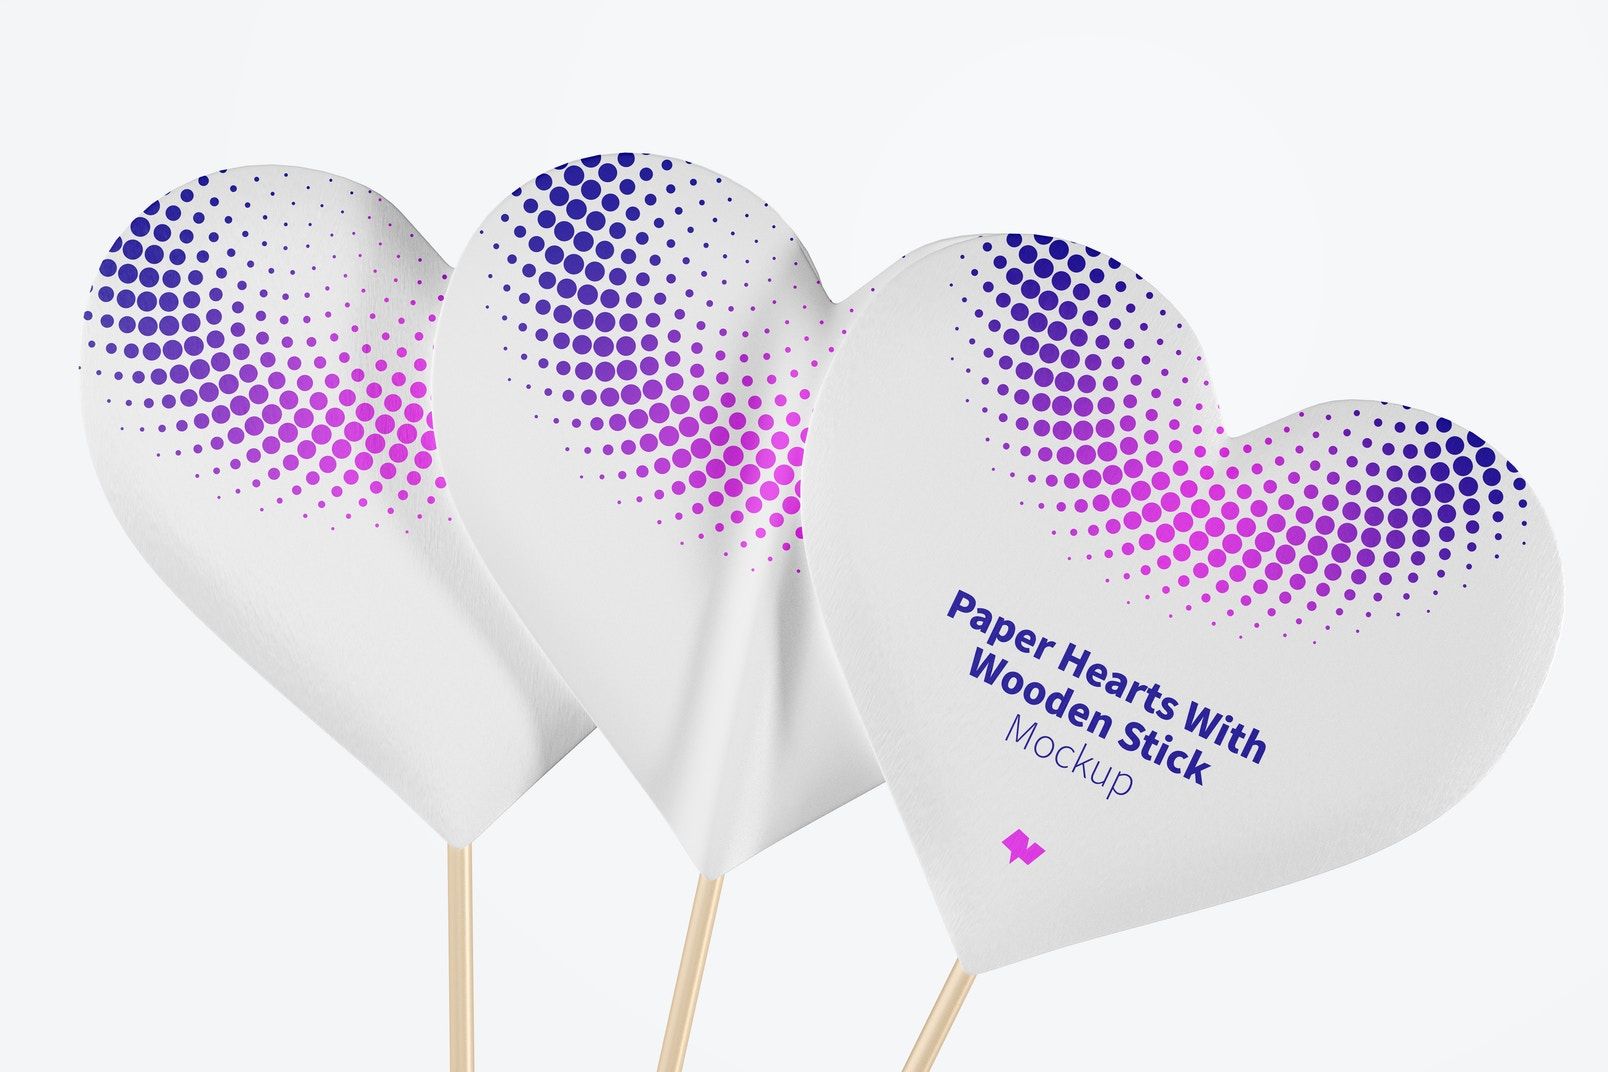 Paper Hearts With Wooden Stick Mockup, Close Up